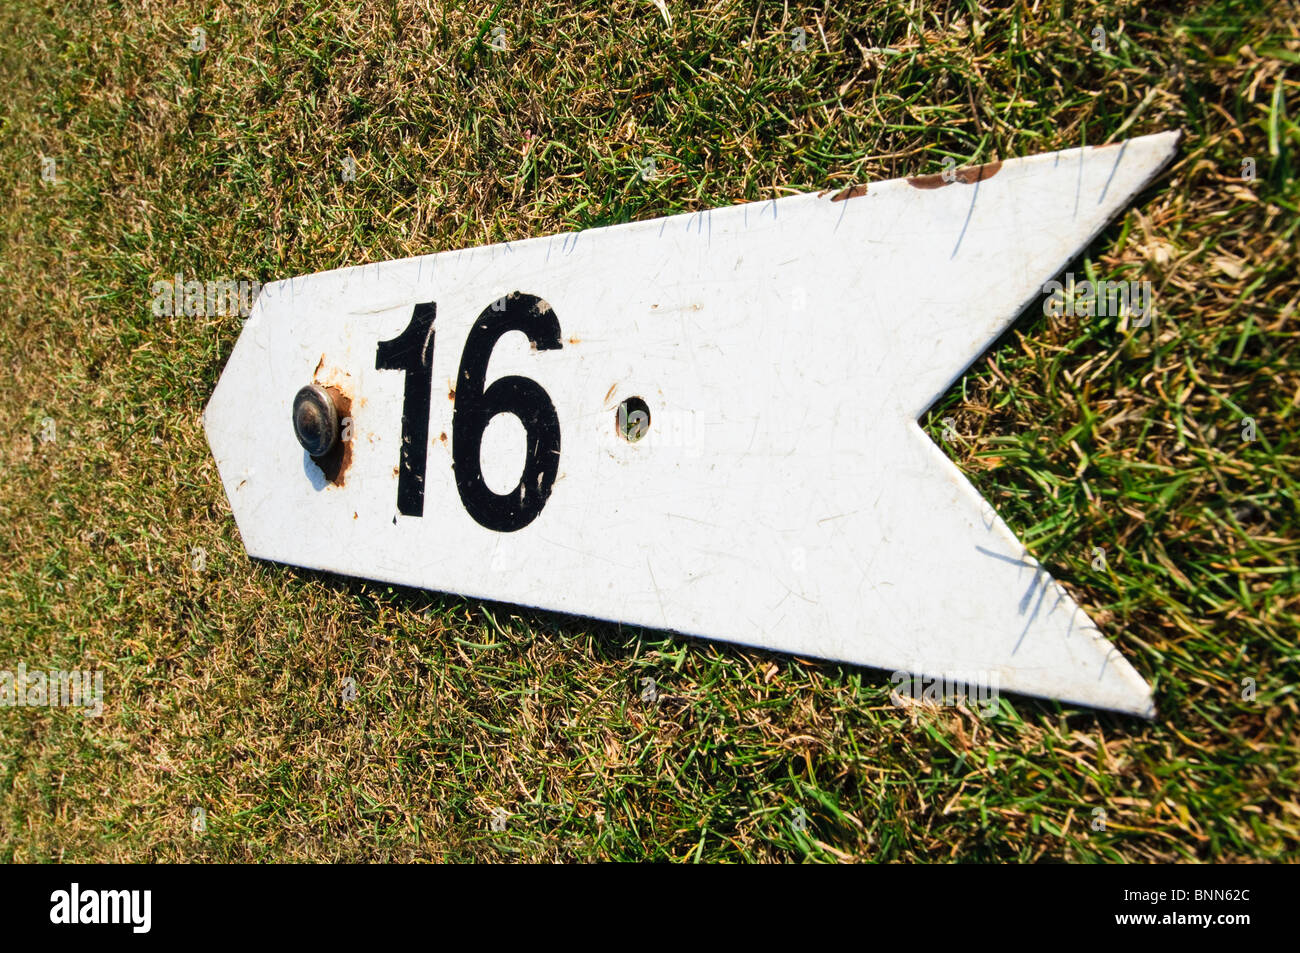 An arrow marking the 16th hole on a pitch and putt course - Stock Image